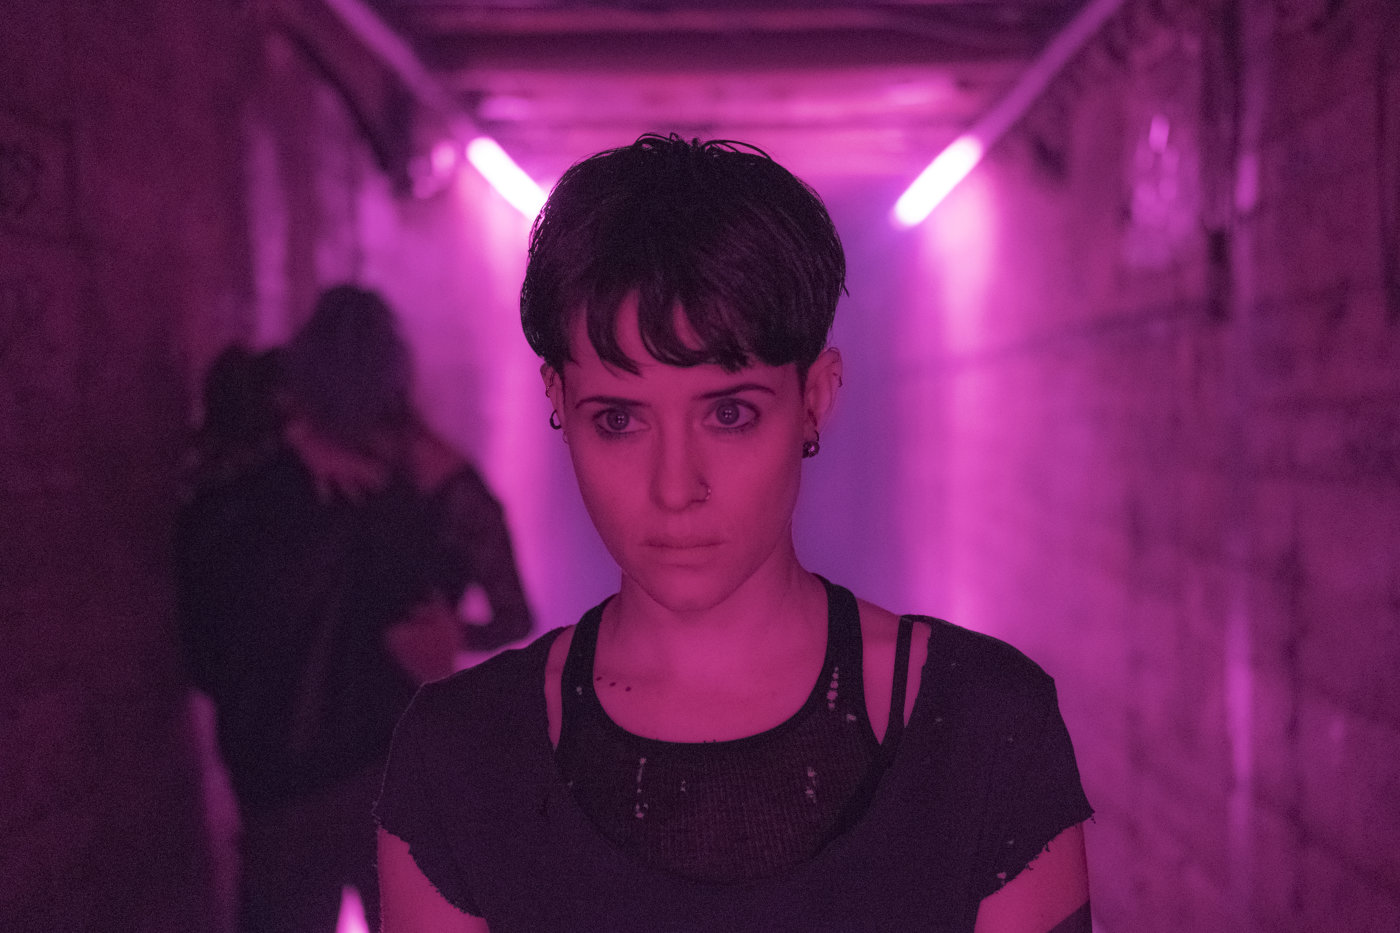 Movie Review: The Girl in the Spider's Web